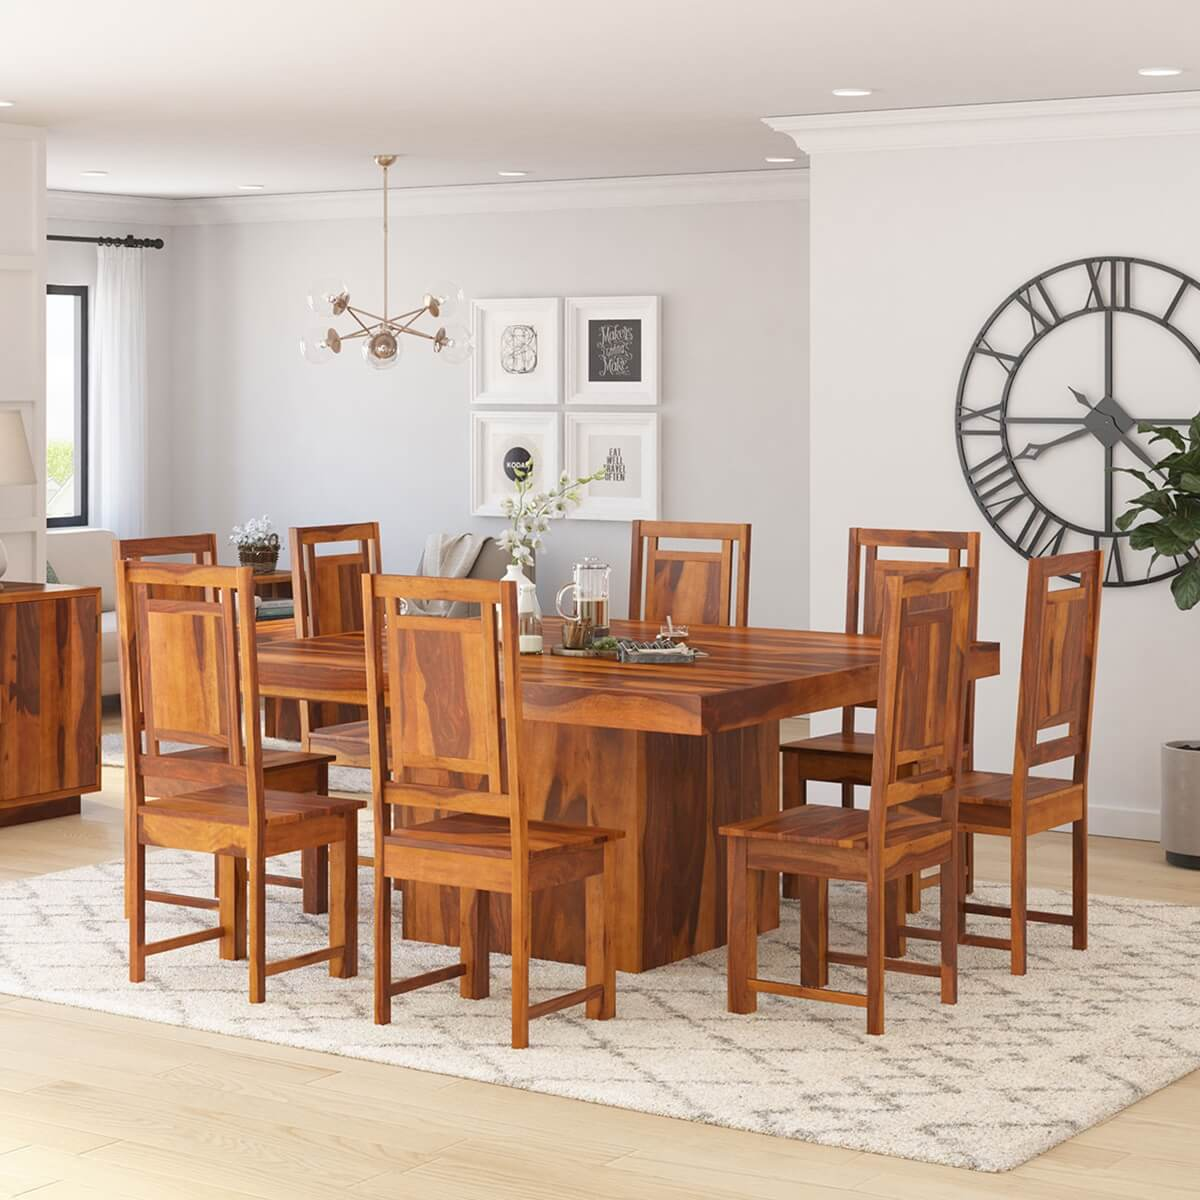 Wood Modern Rustic Block Pedestal Square Dining Table For 8